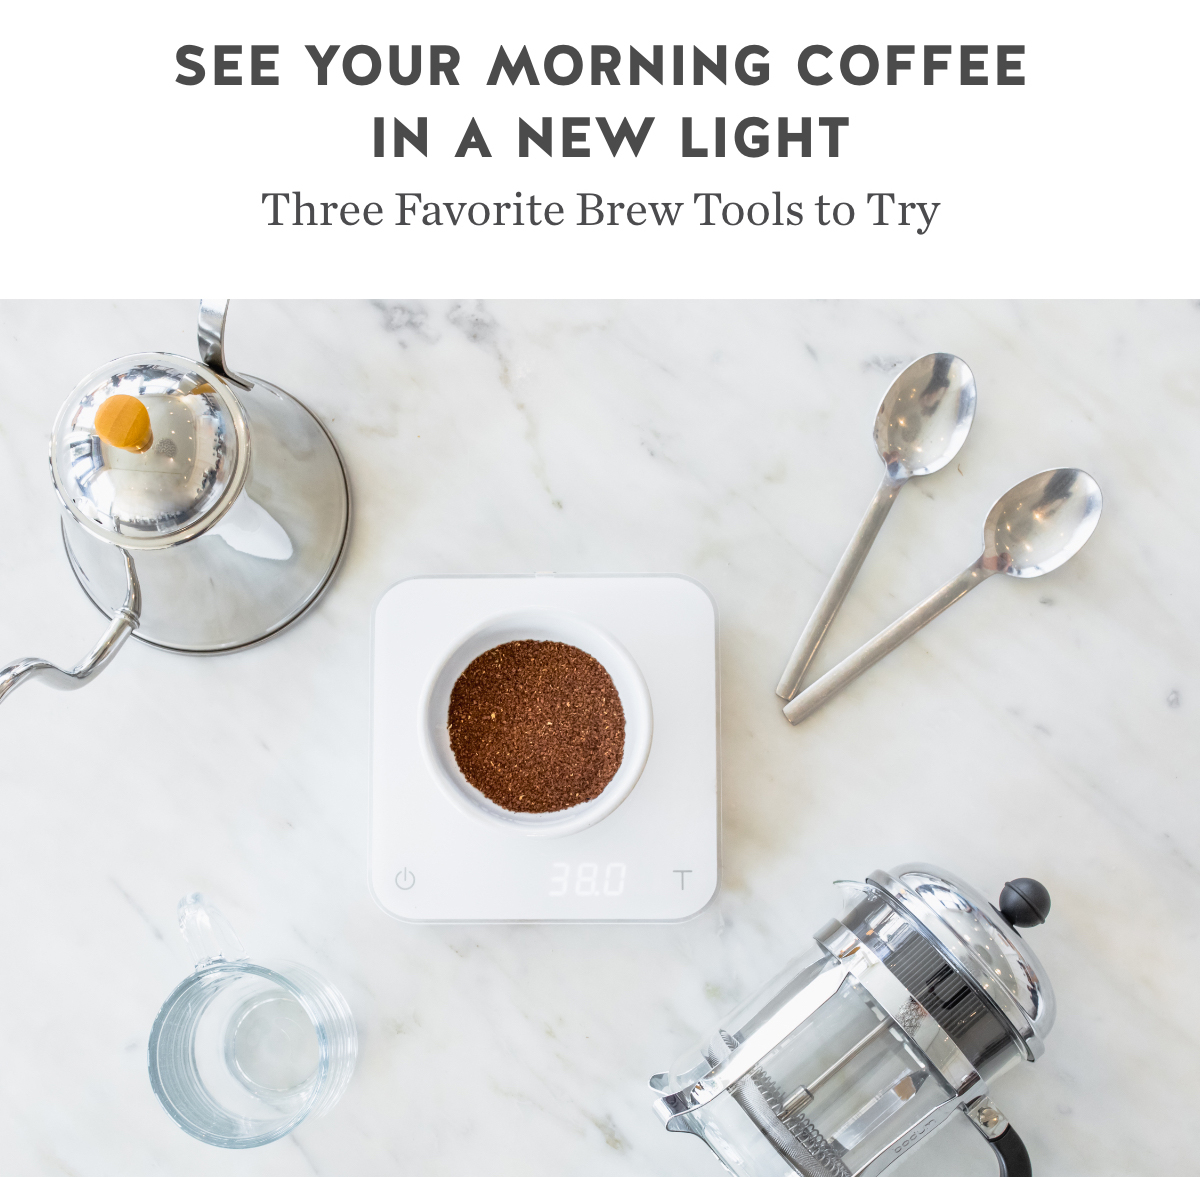 See Your Morning Coffee in a New Light. Tools to bring out the best in your coffee.